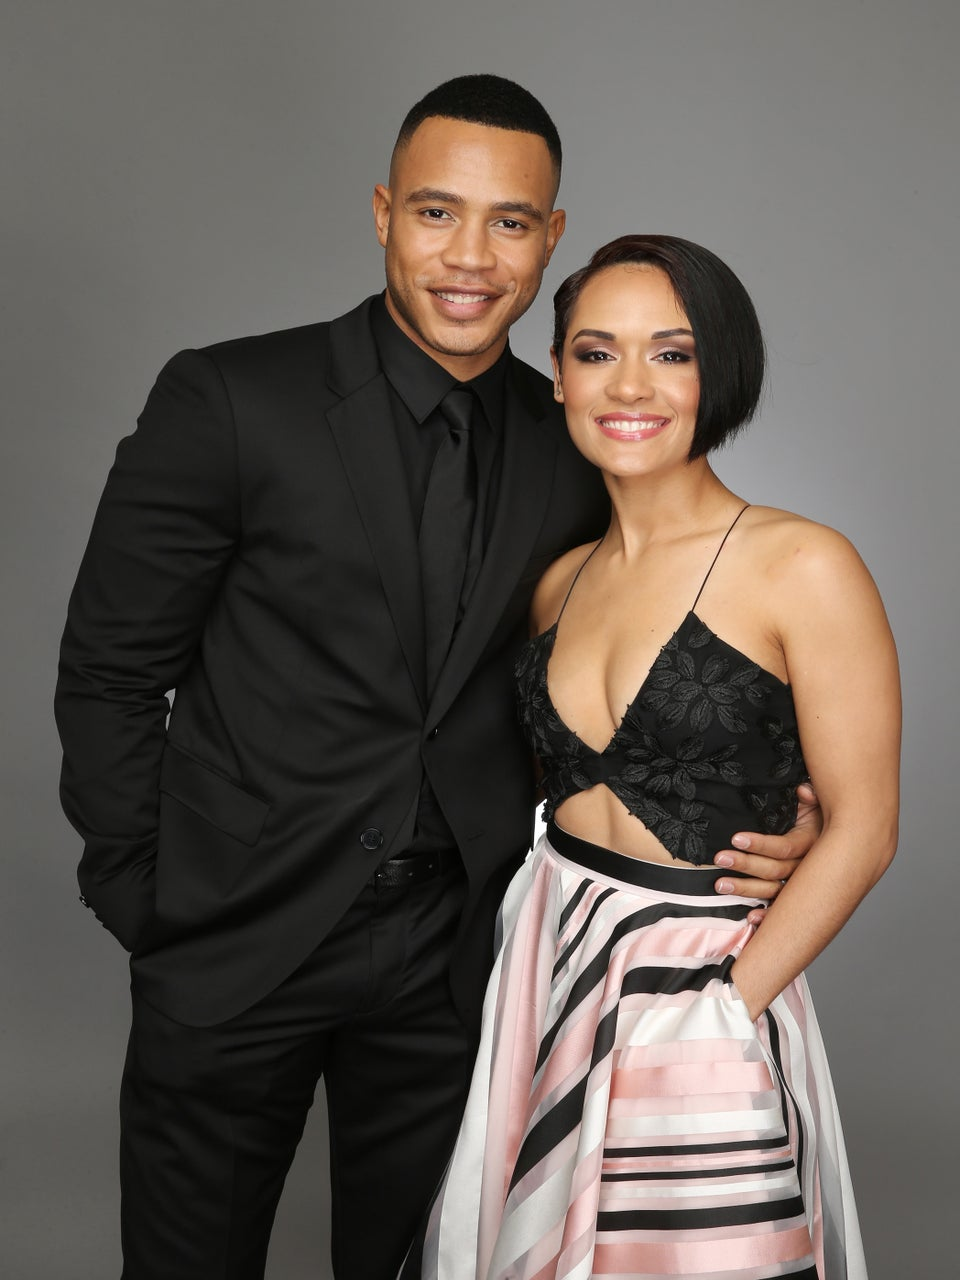 Married 'Empire' Stars Trai Byers And Grace Gealey Just Gave Us Major Beach Vacation Goals